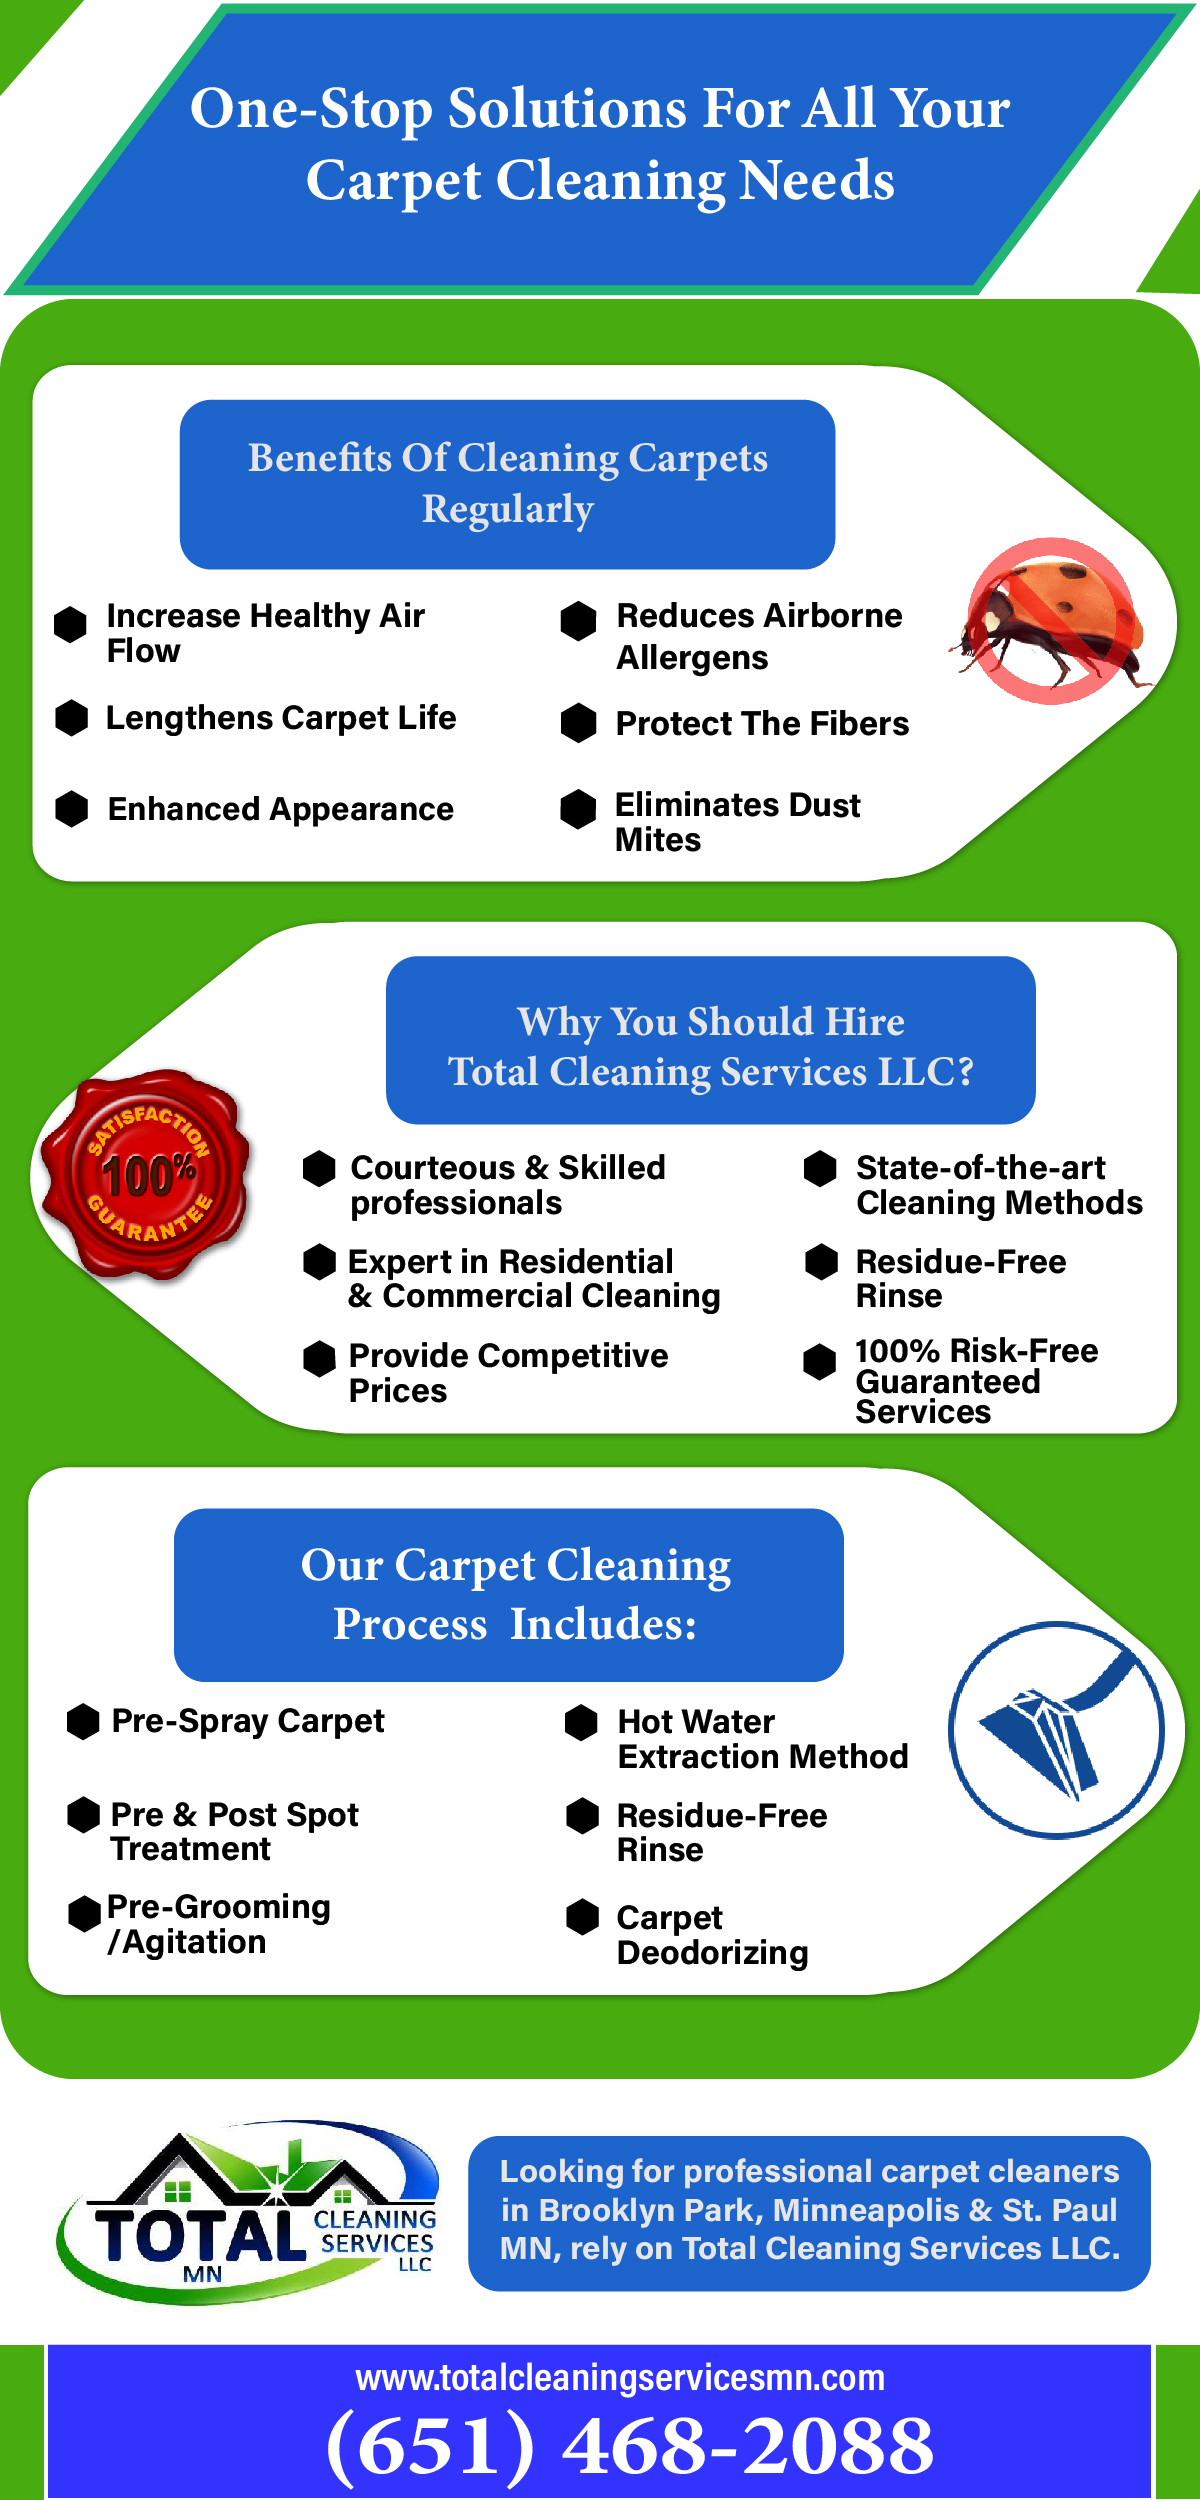 One-Stop Solutions For All Your Carpet Cleaning Needs [Infographic]